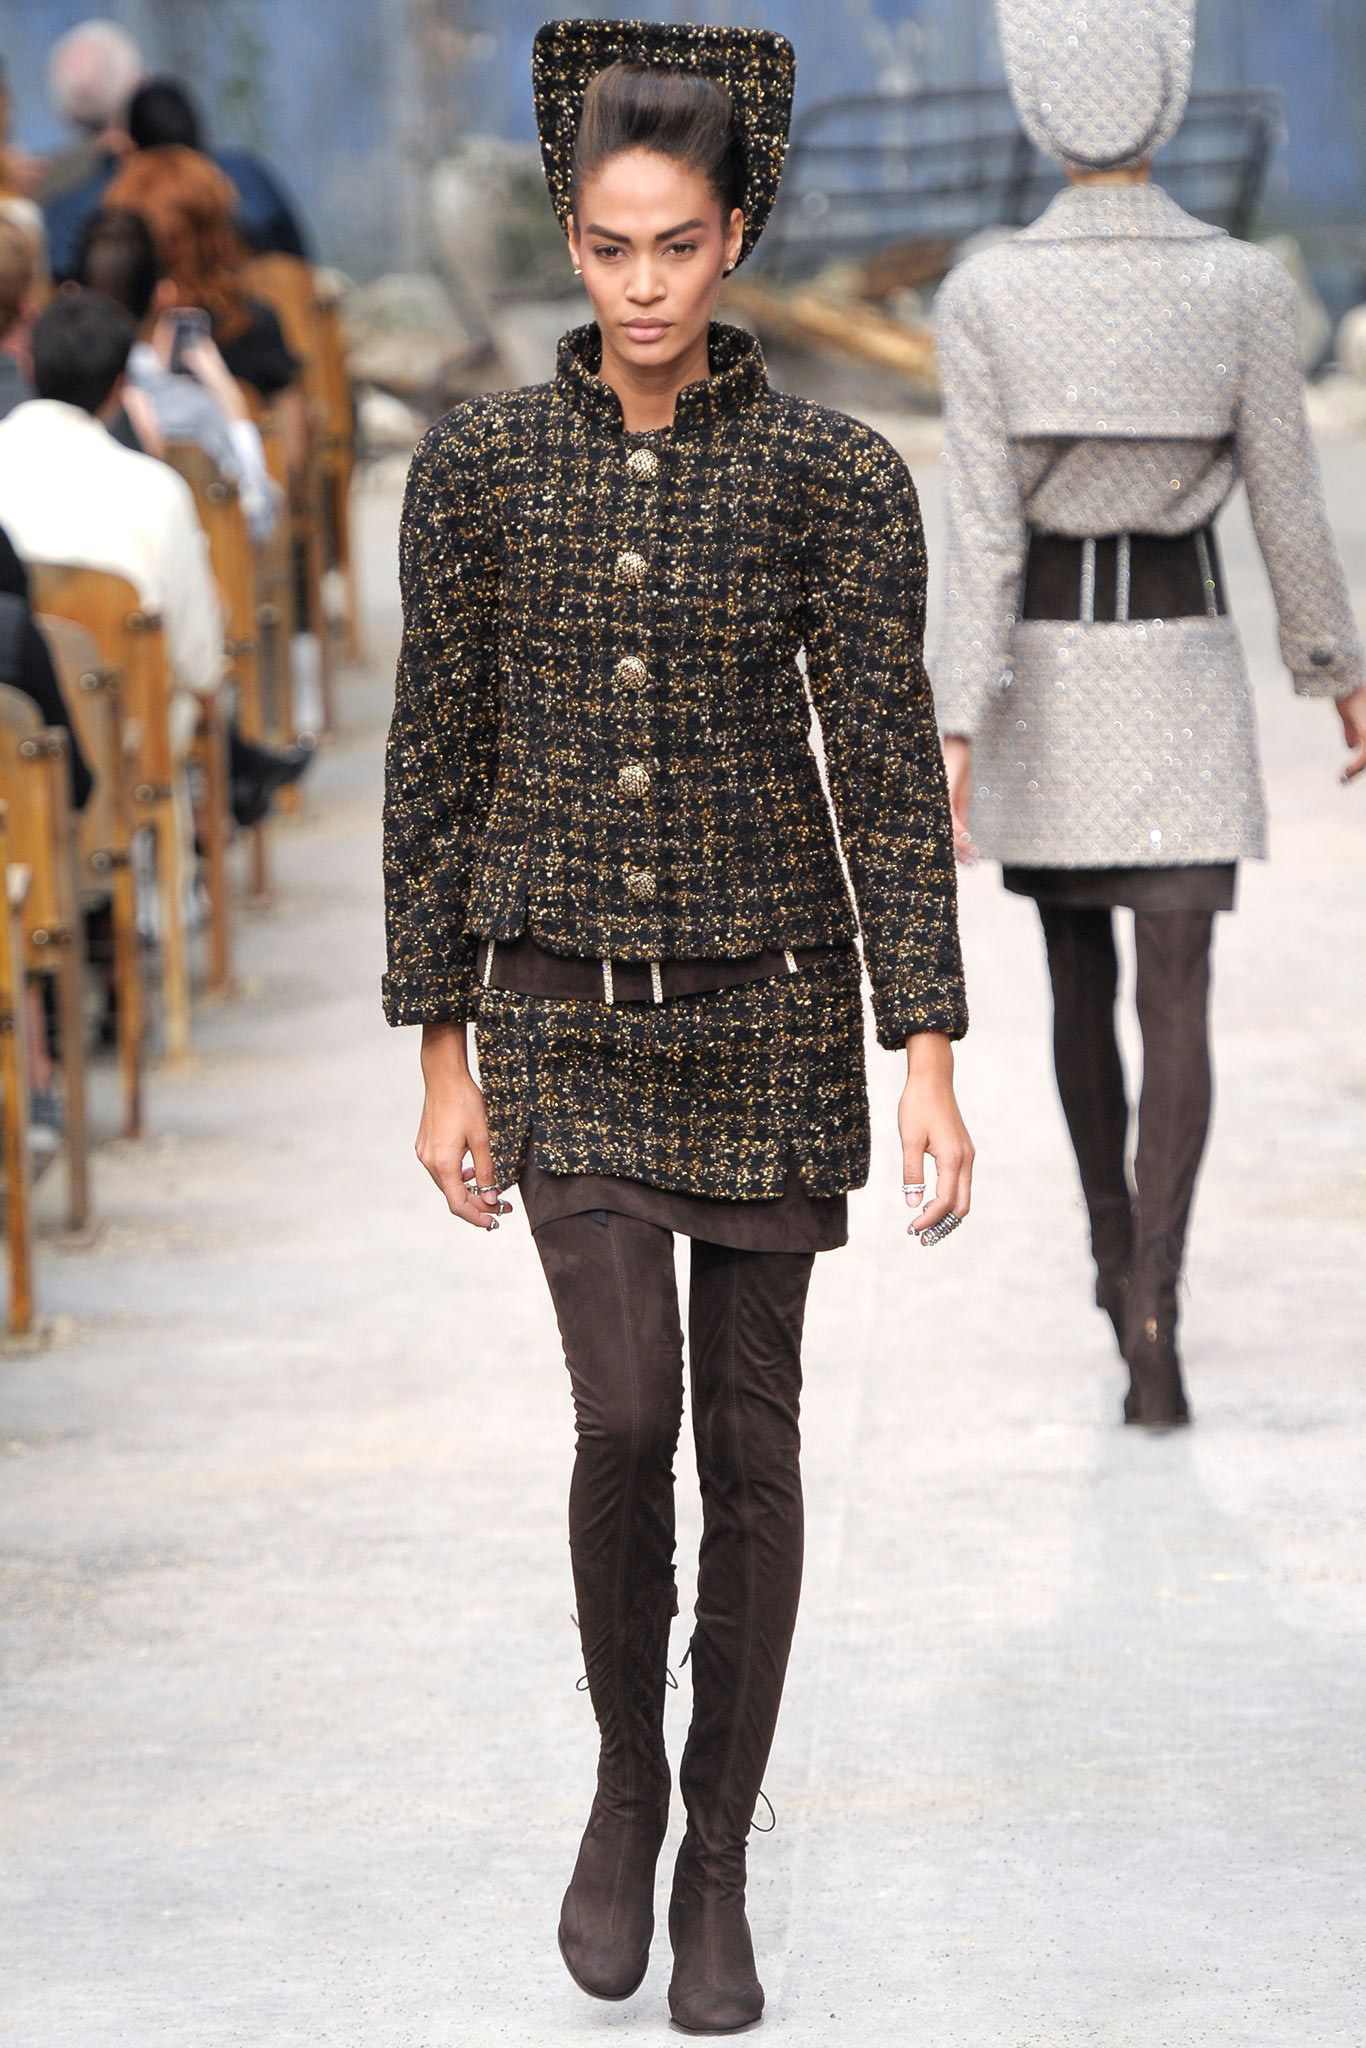 Chanel Fall 2013 Couture Fashion Show - Joan Smalls (IMG)